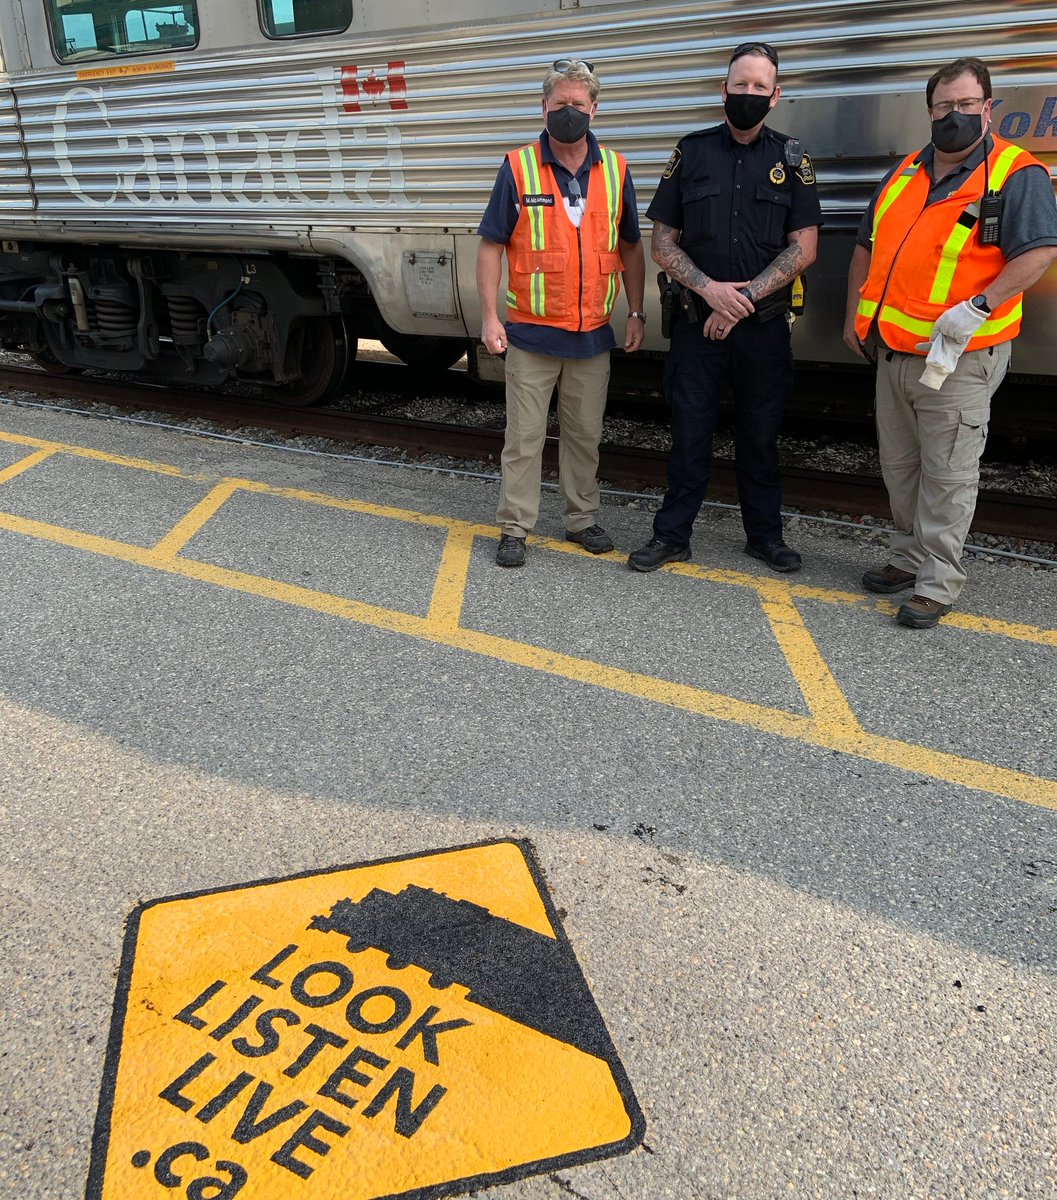 """""""Whether on board our trains, in our stations or in the communities we serve, we remain committed to rail safety."""" Read @Garneau_Cynthia's full statement for #RailSafetyWeek 2020 in our press release here: https://t.co/4TY1C9lUCh 🚸 https://t.co/g7lXRyBESL"""